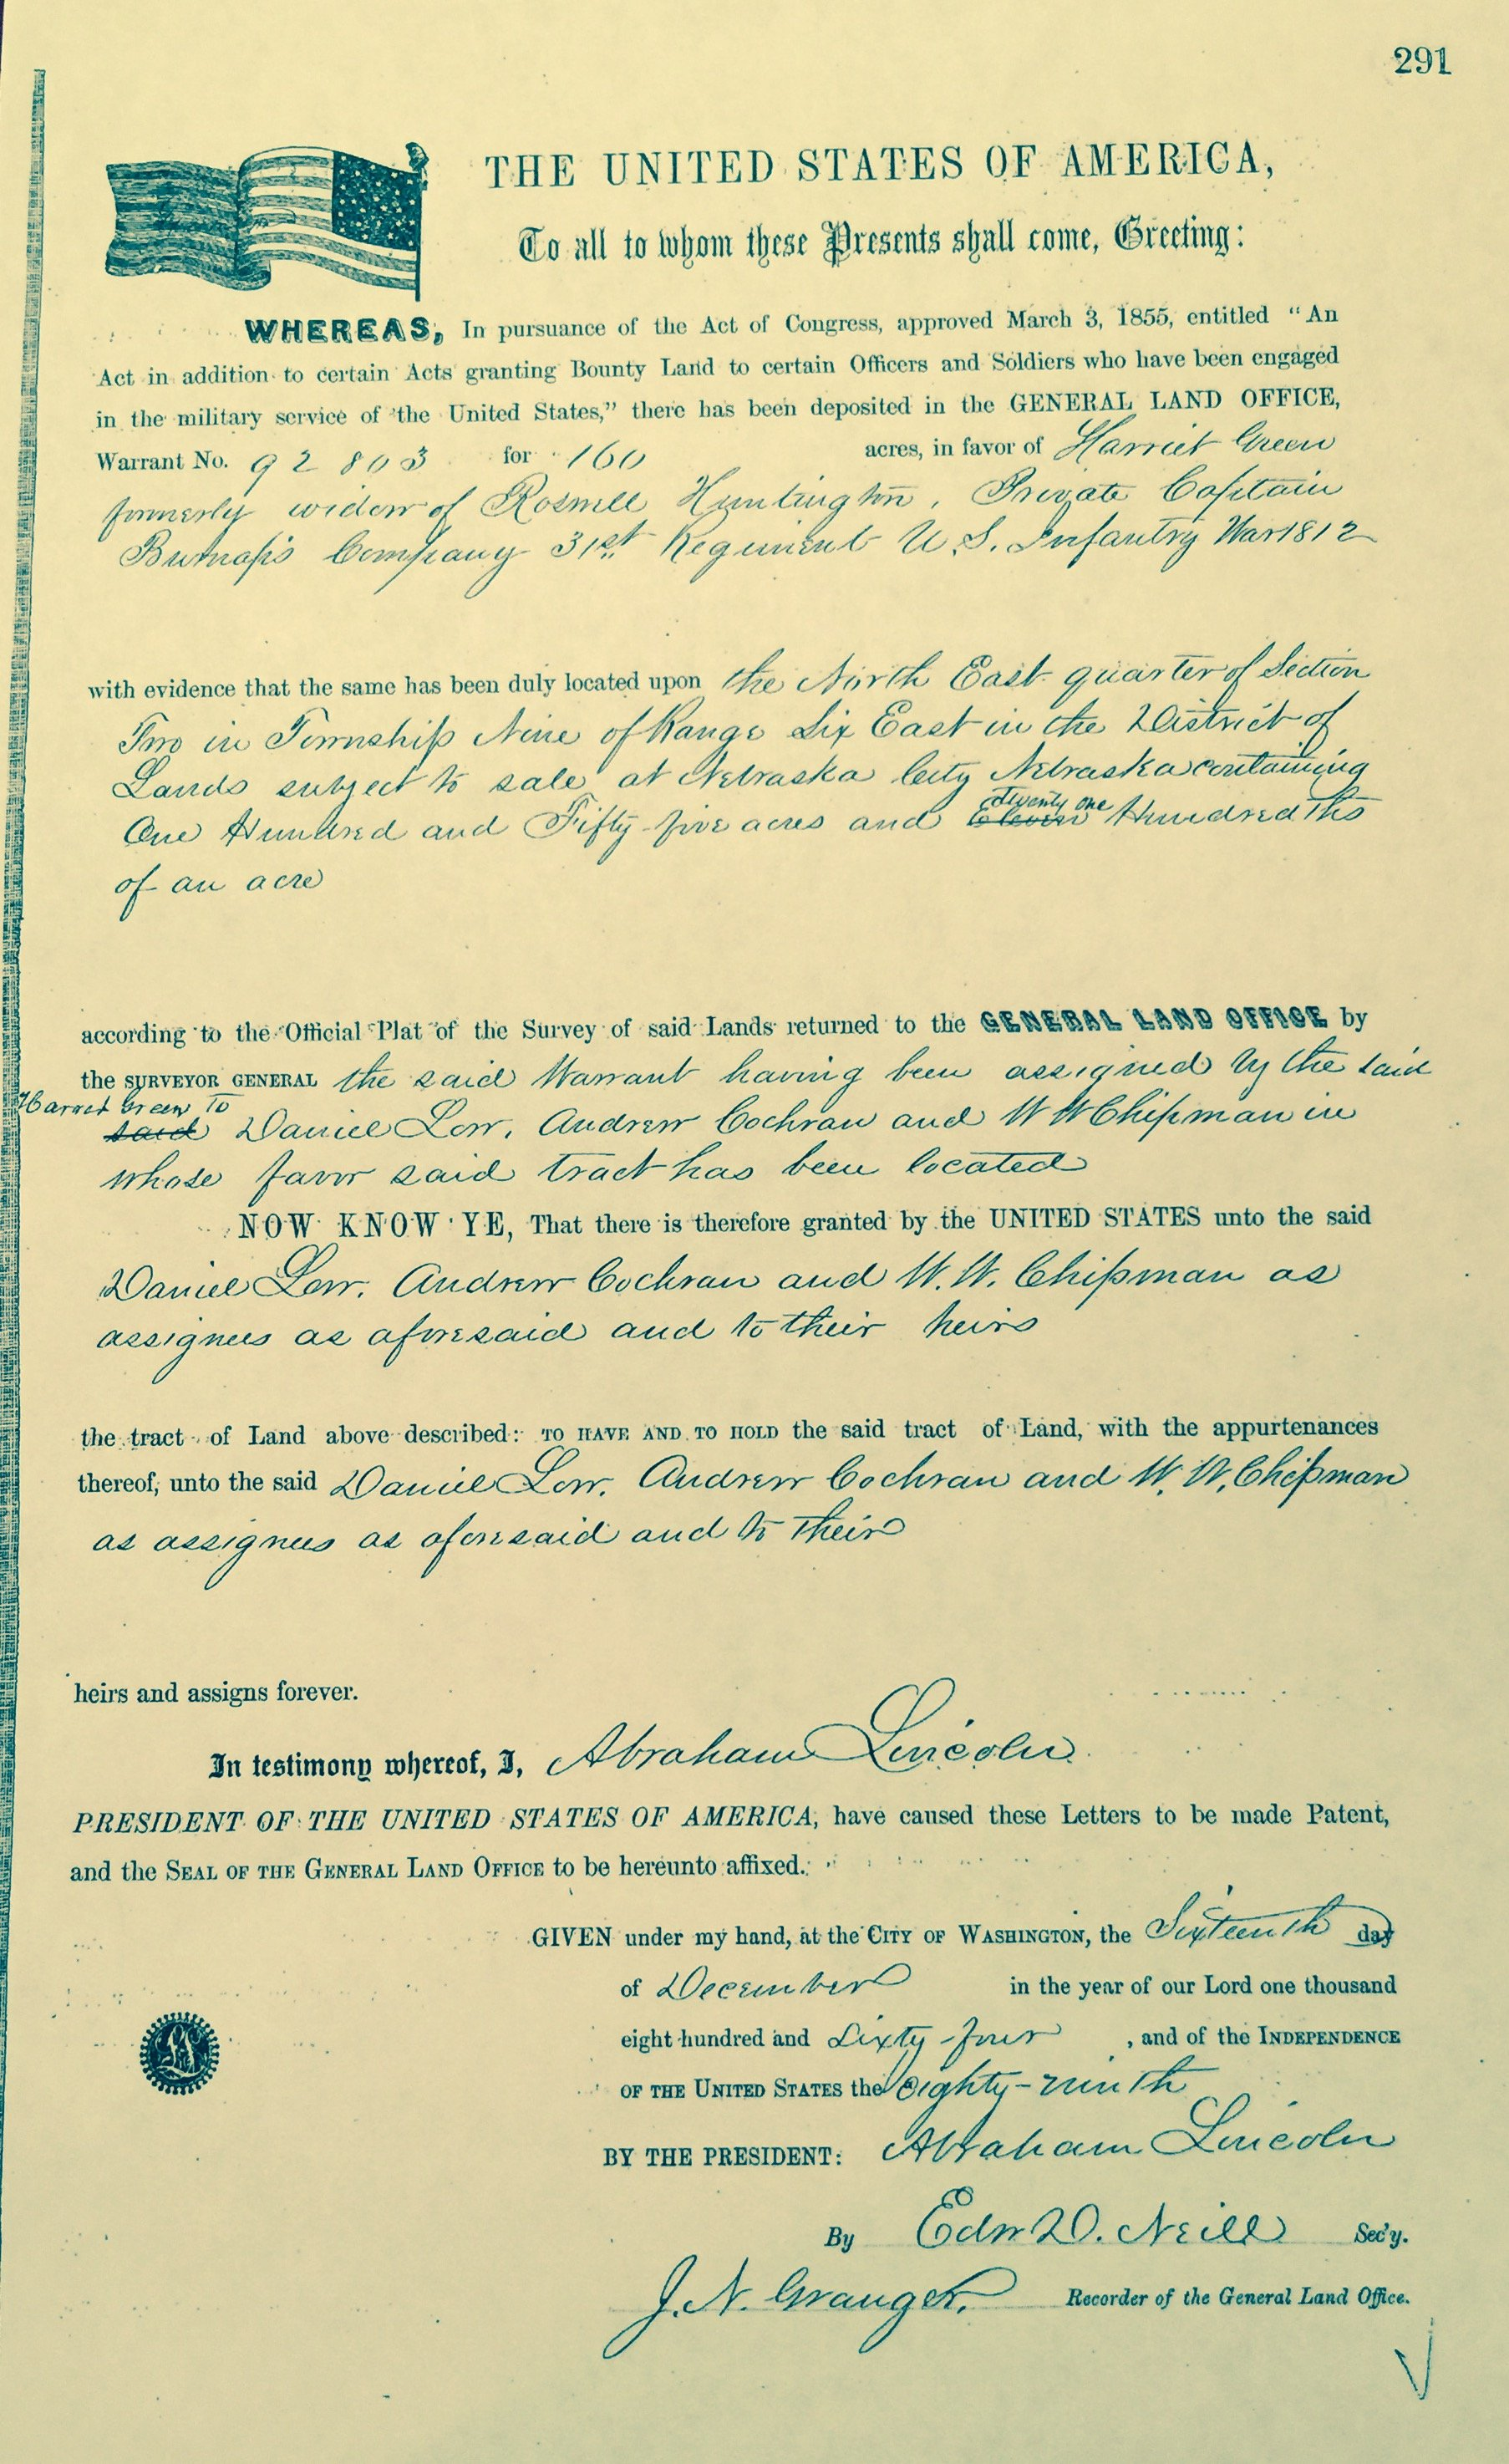 Land Grant Deed for Robber's Cave under the Homestead Act of 1862.  Photo courtesy of Joel Green